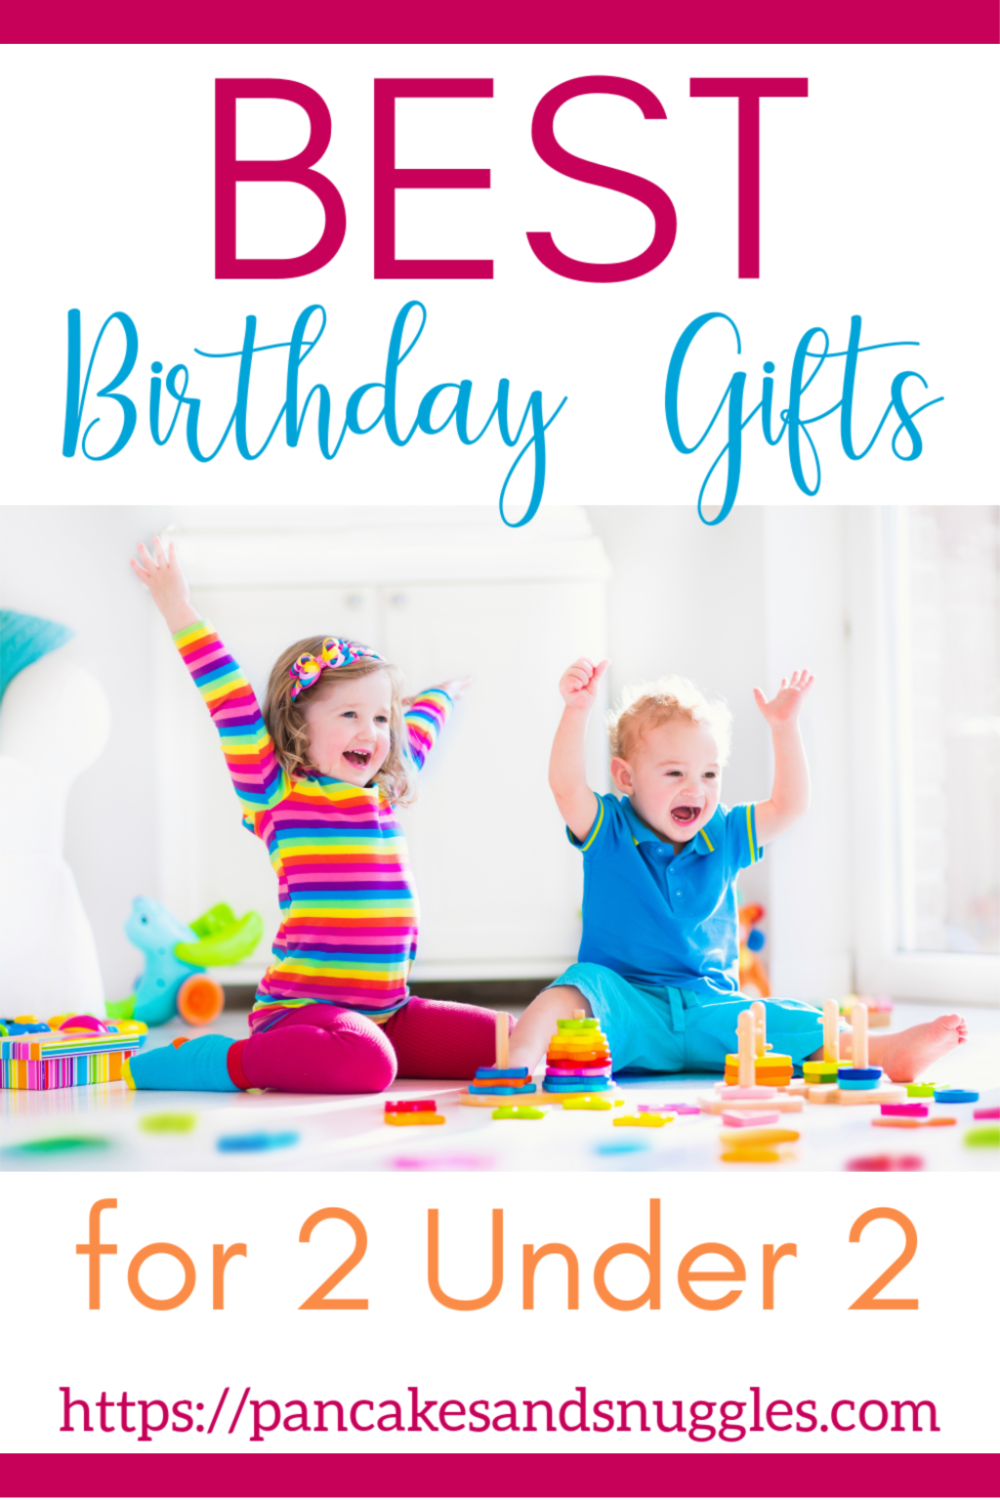 At a loss for what to get baby #2? Check out my list of best birthday gifts for 2 under 2! Pin now, read later.